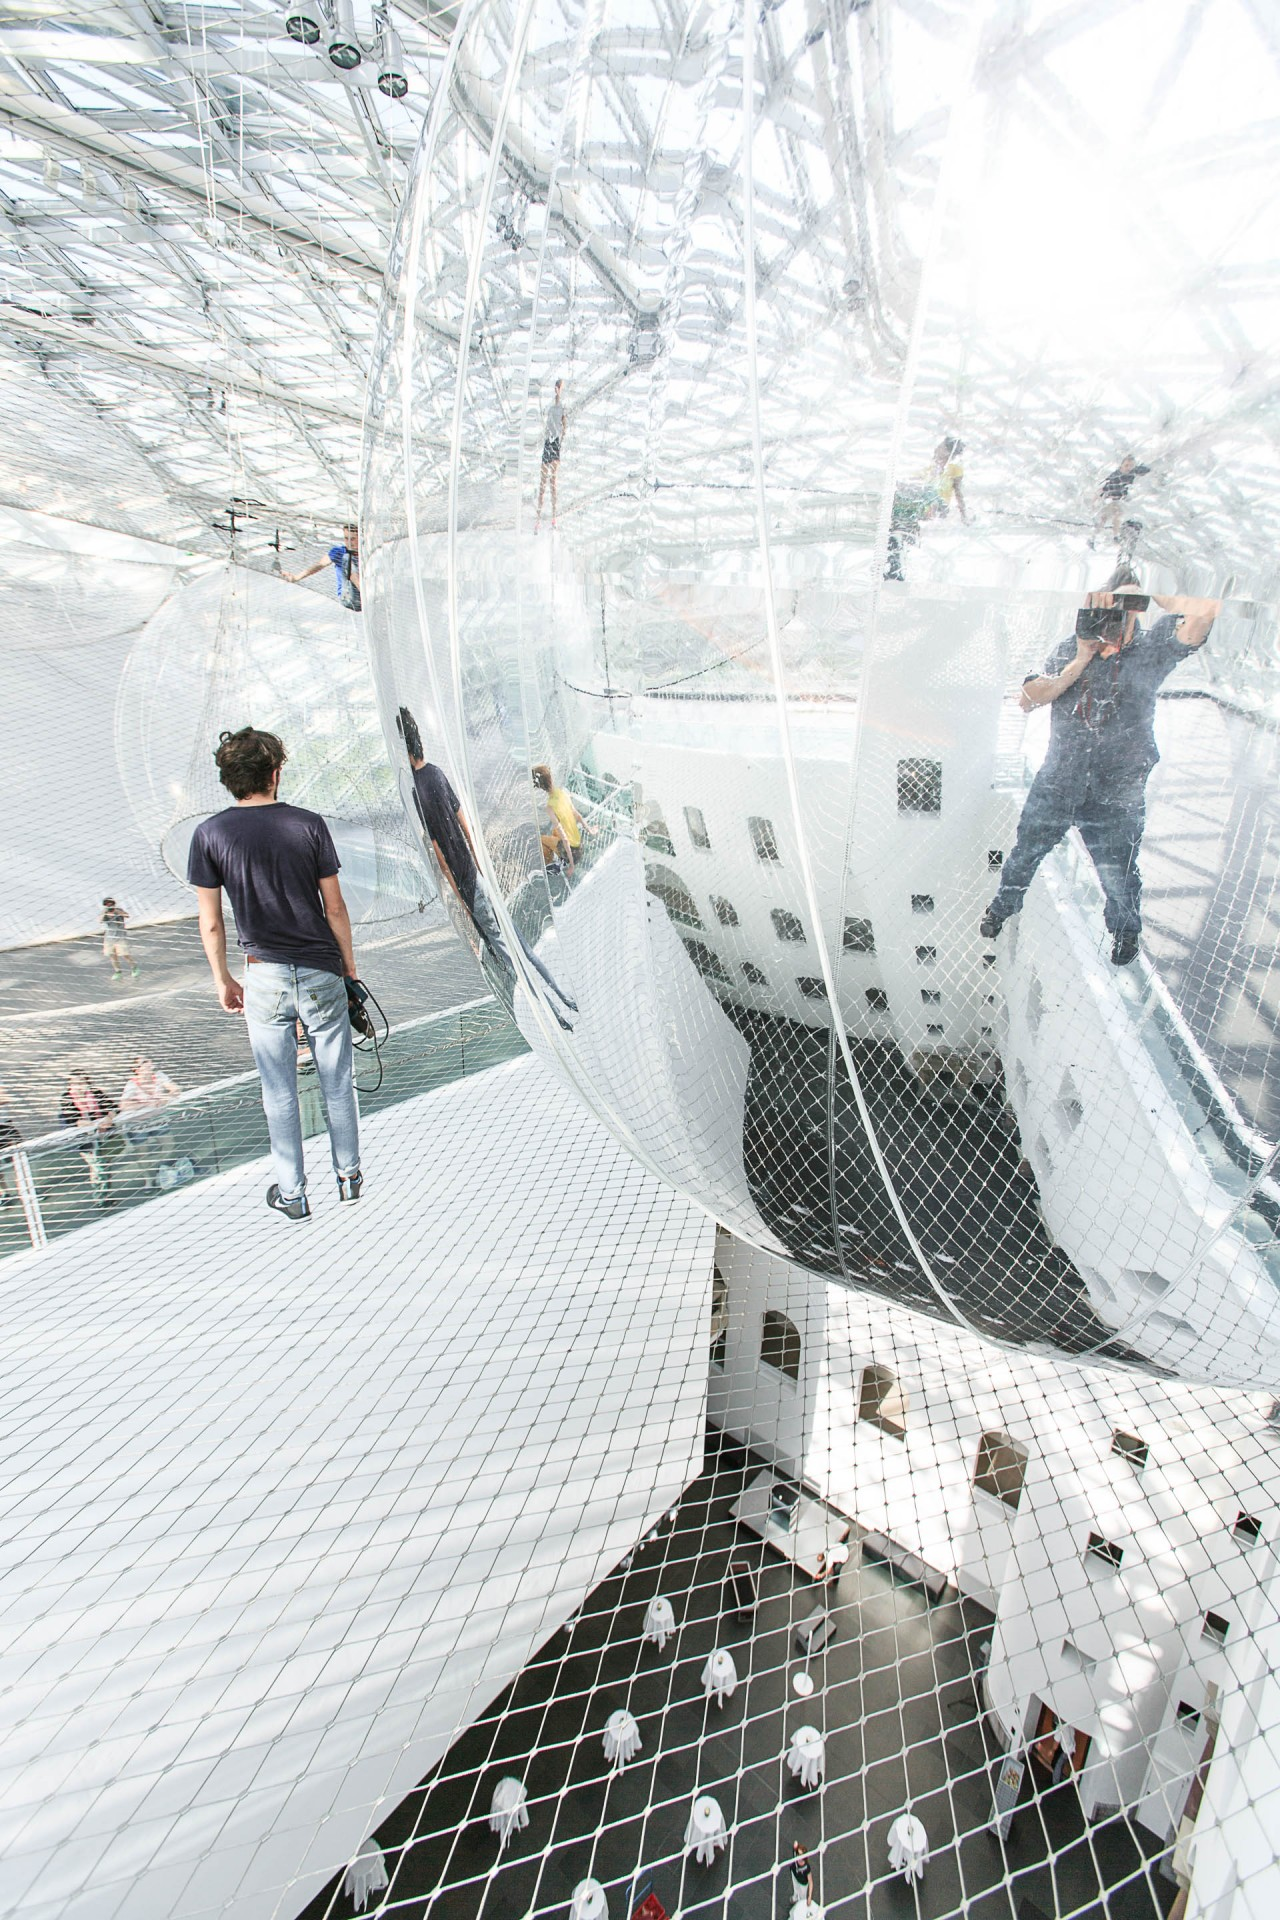 Bauhausgebäude Dessau-Rosslau, In Orbit - Projects - Tomás Saraceno